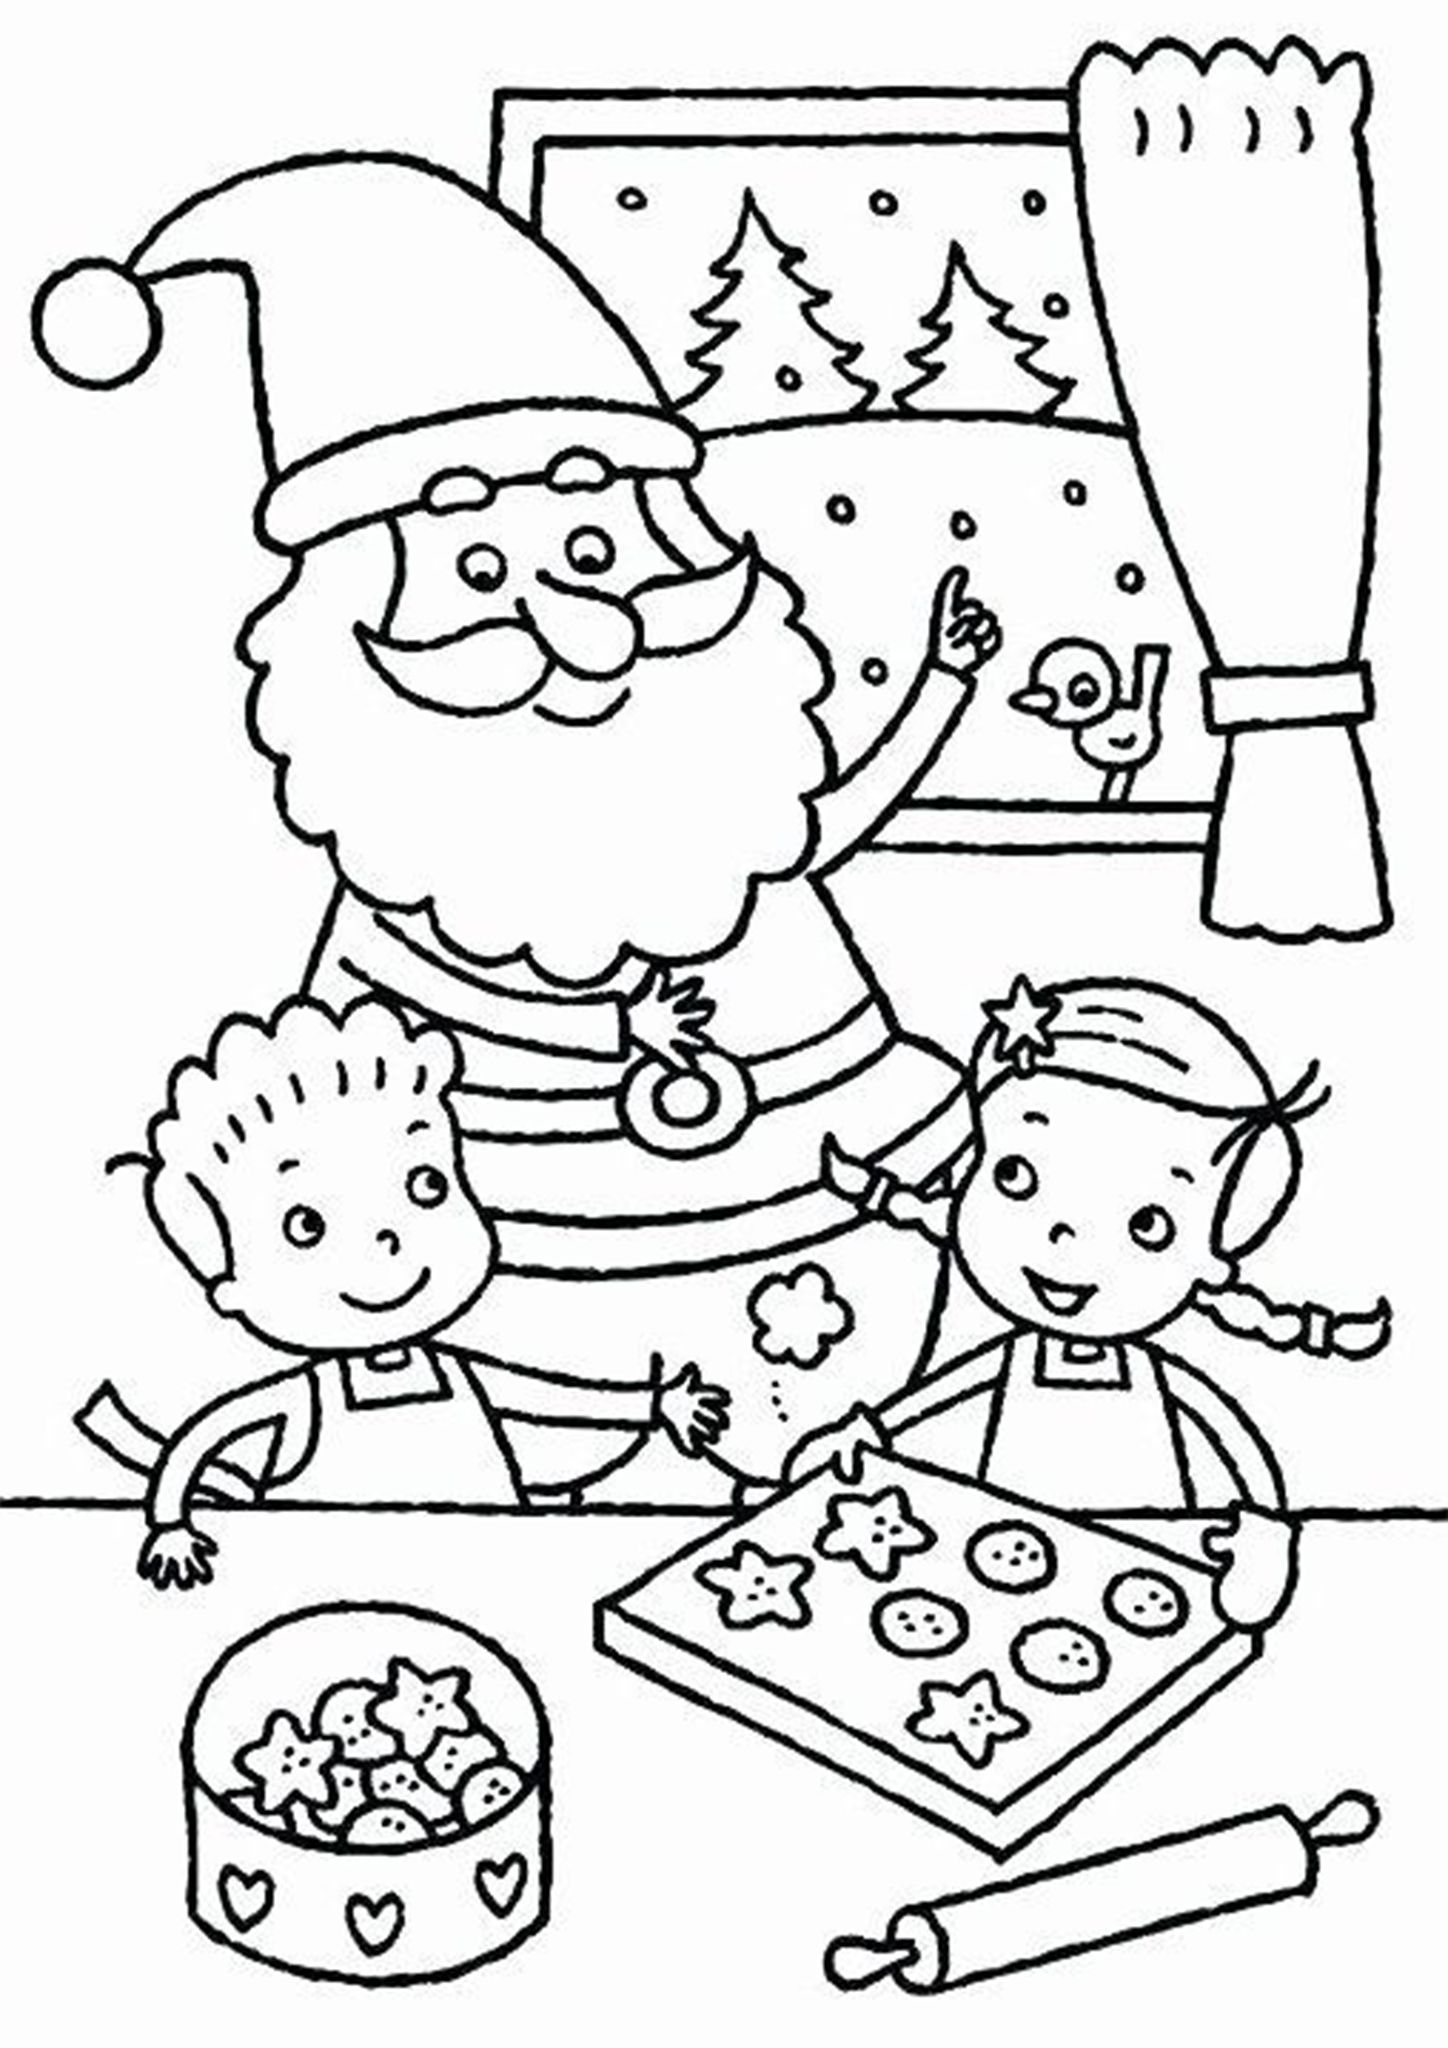 Free Easy To Print Food Coloring Pages Food Coloring Pages Printable Flower Coloring Pages Bear Coloring Pages